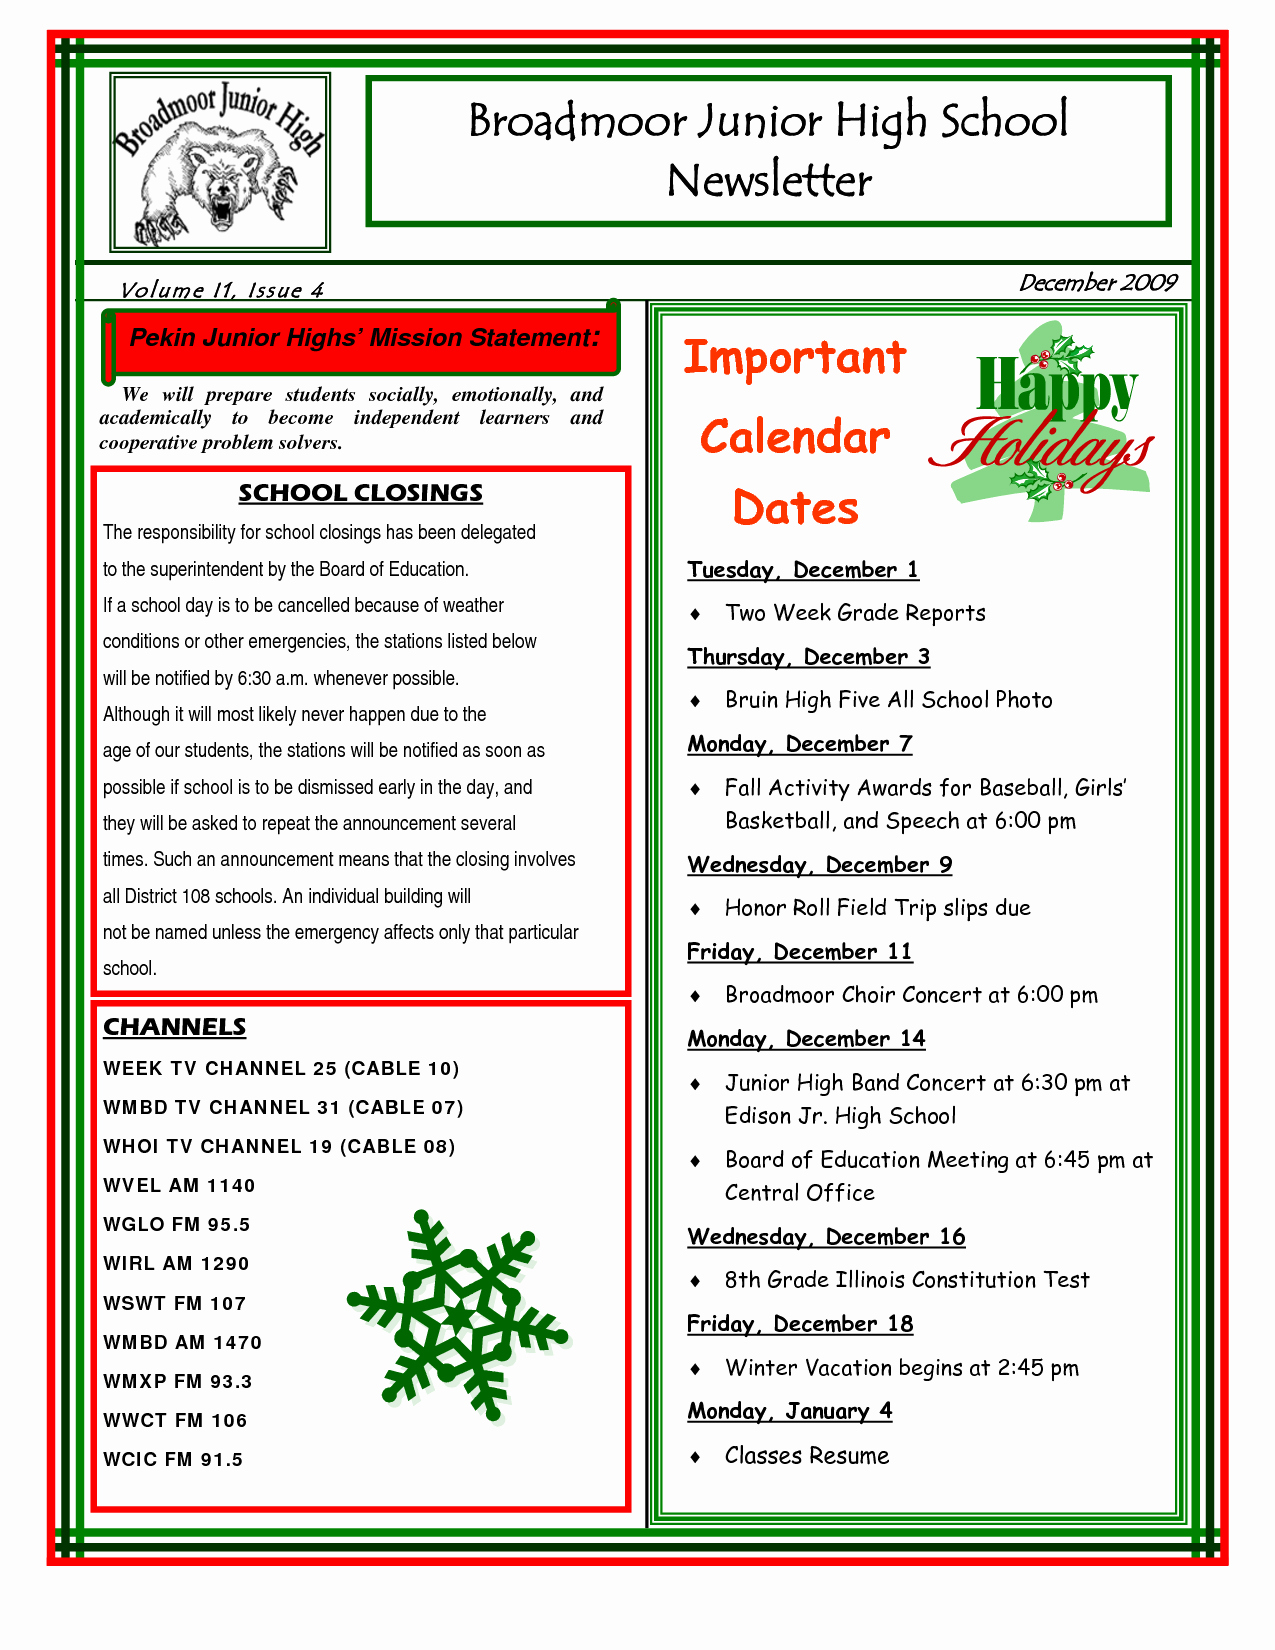 School Newsletter Templates Free New 9 Best Of Sample School Newsletter Templates Free